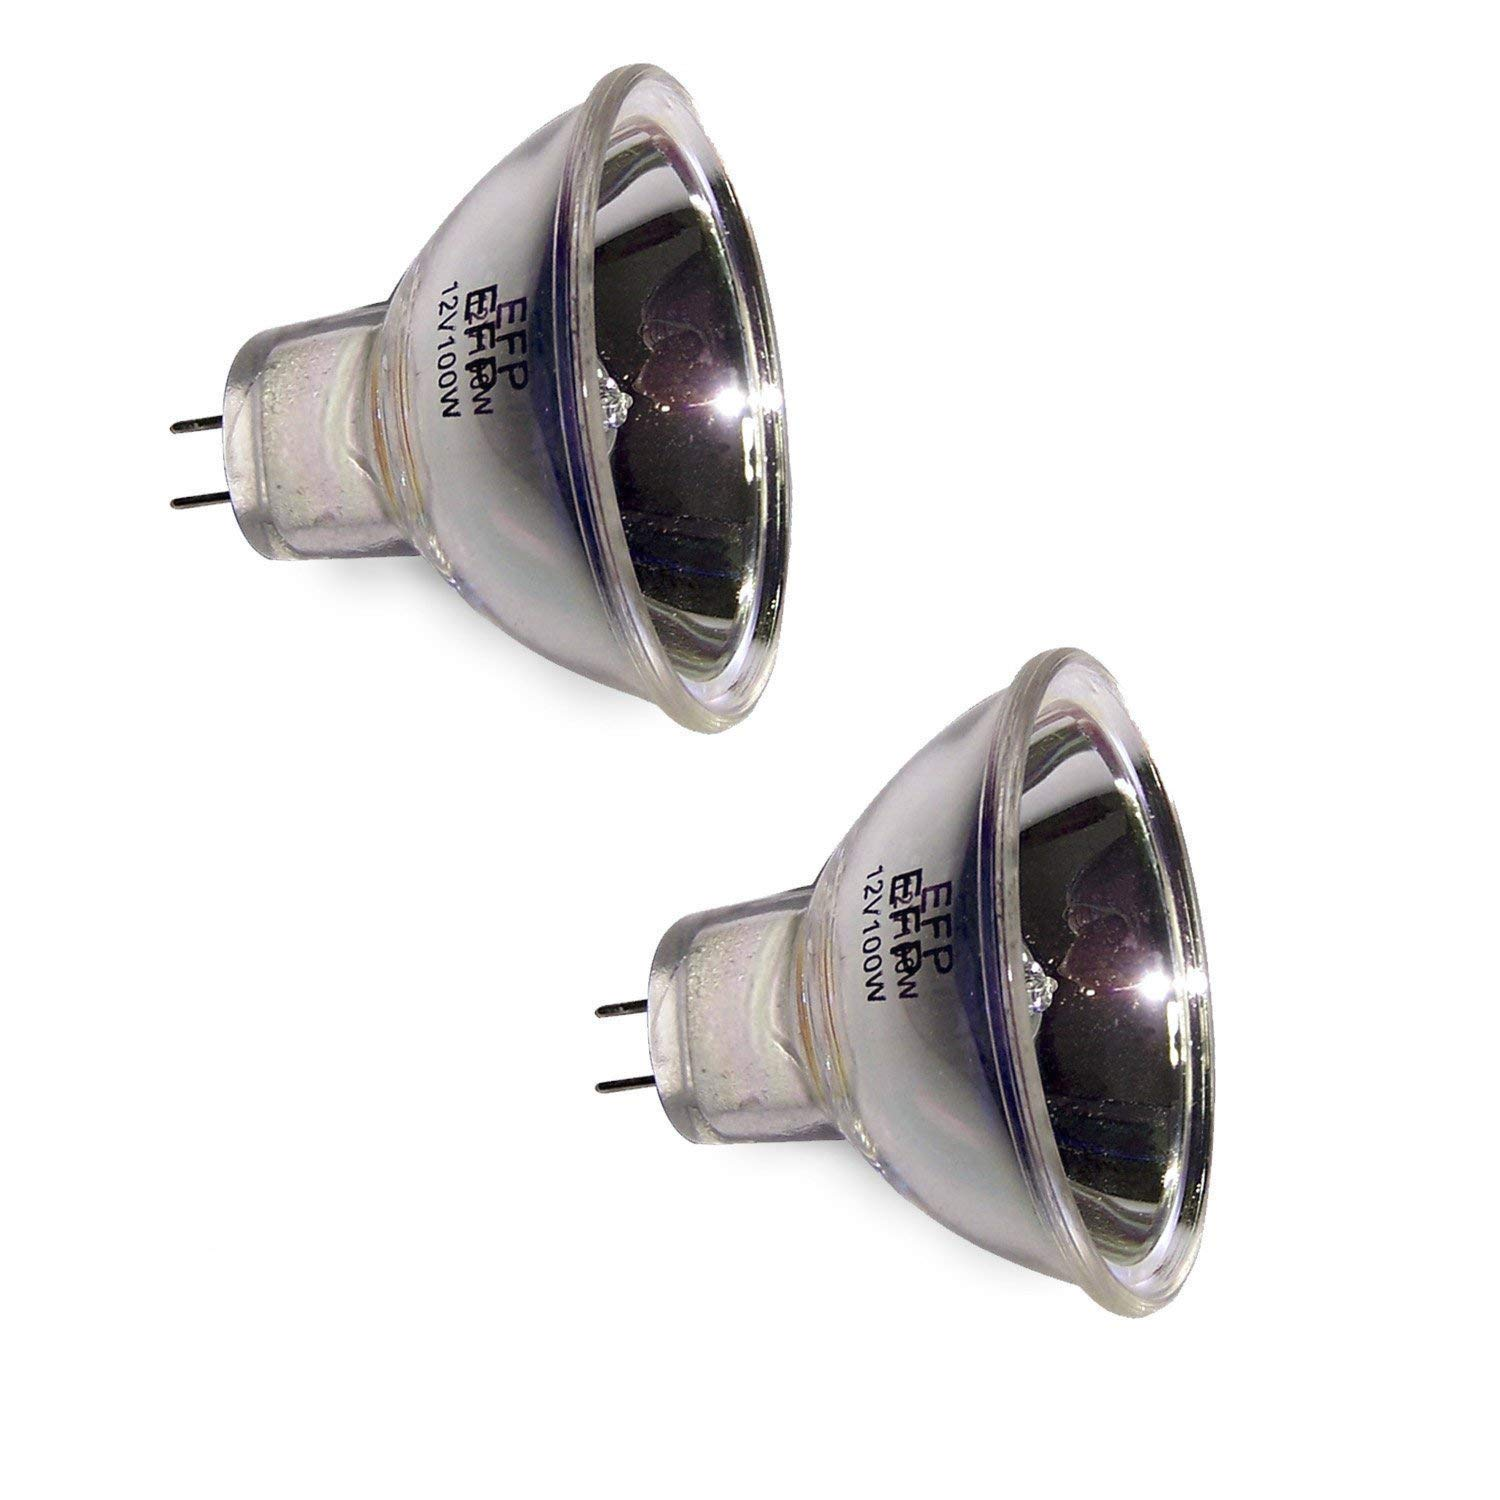 BORYLI EFP 12V 100W GZ6.35 Halogen Bulbs Pack of 2